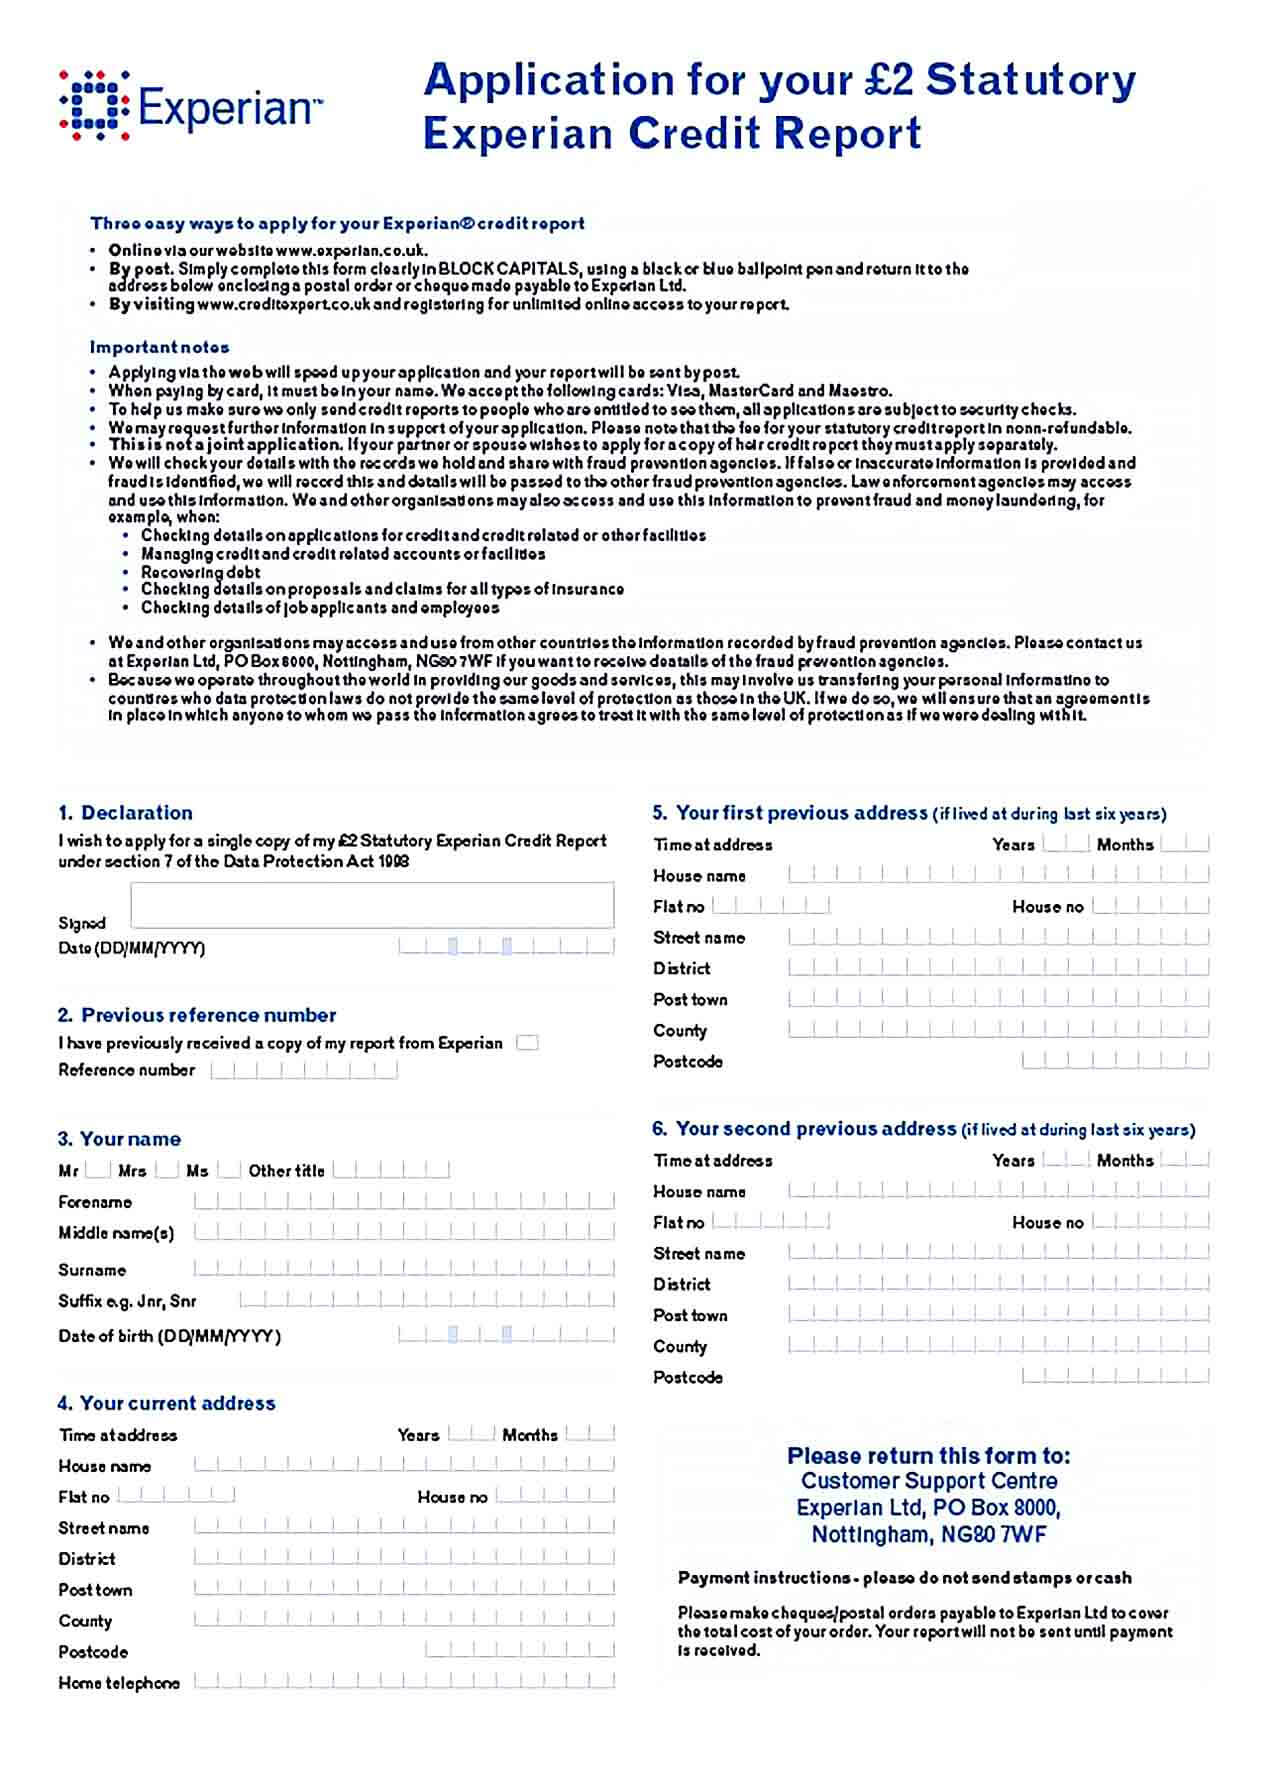 Sample Credit Report Application Form